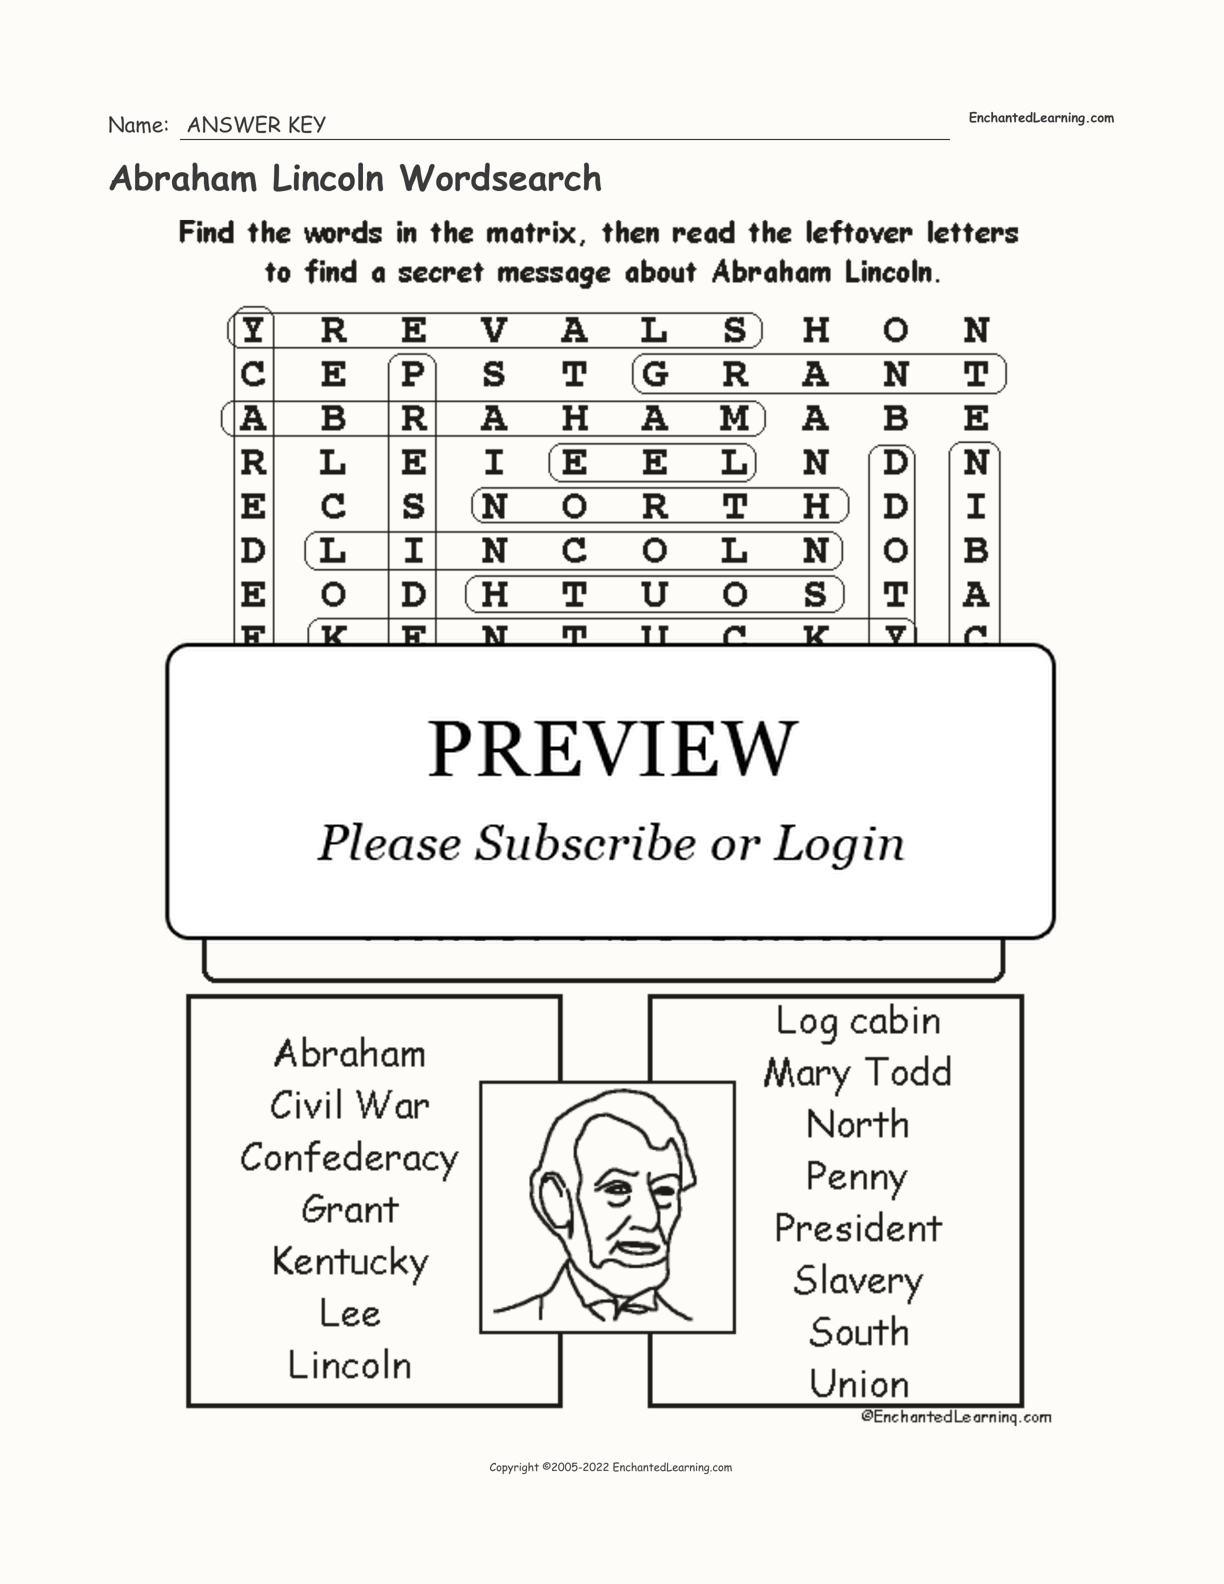 Abraham Lincoln Wordsearch